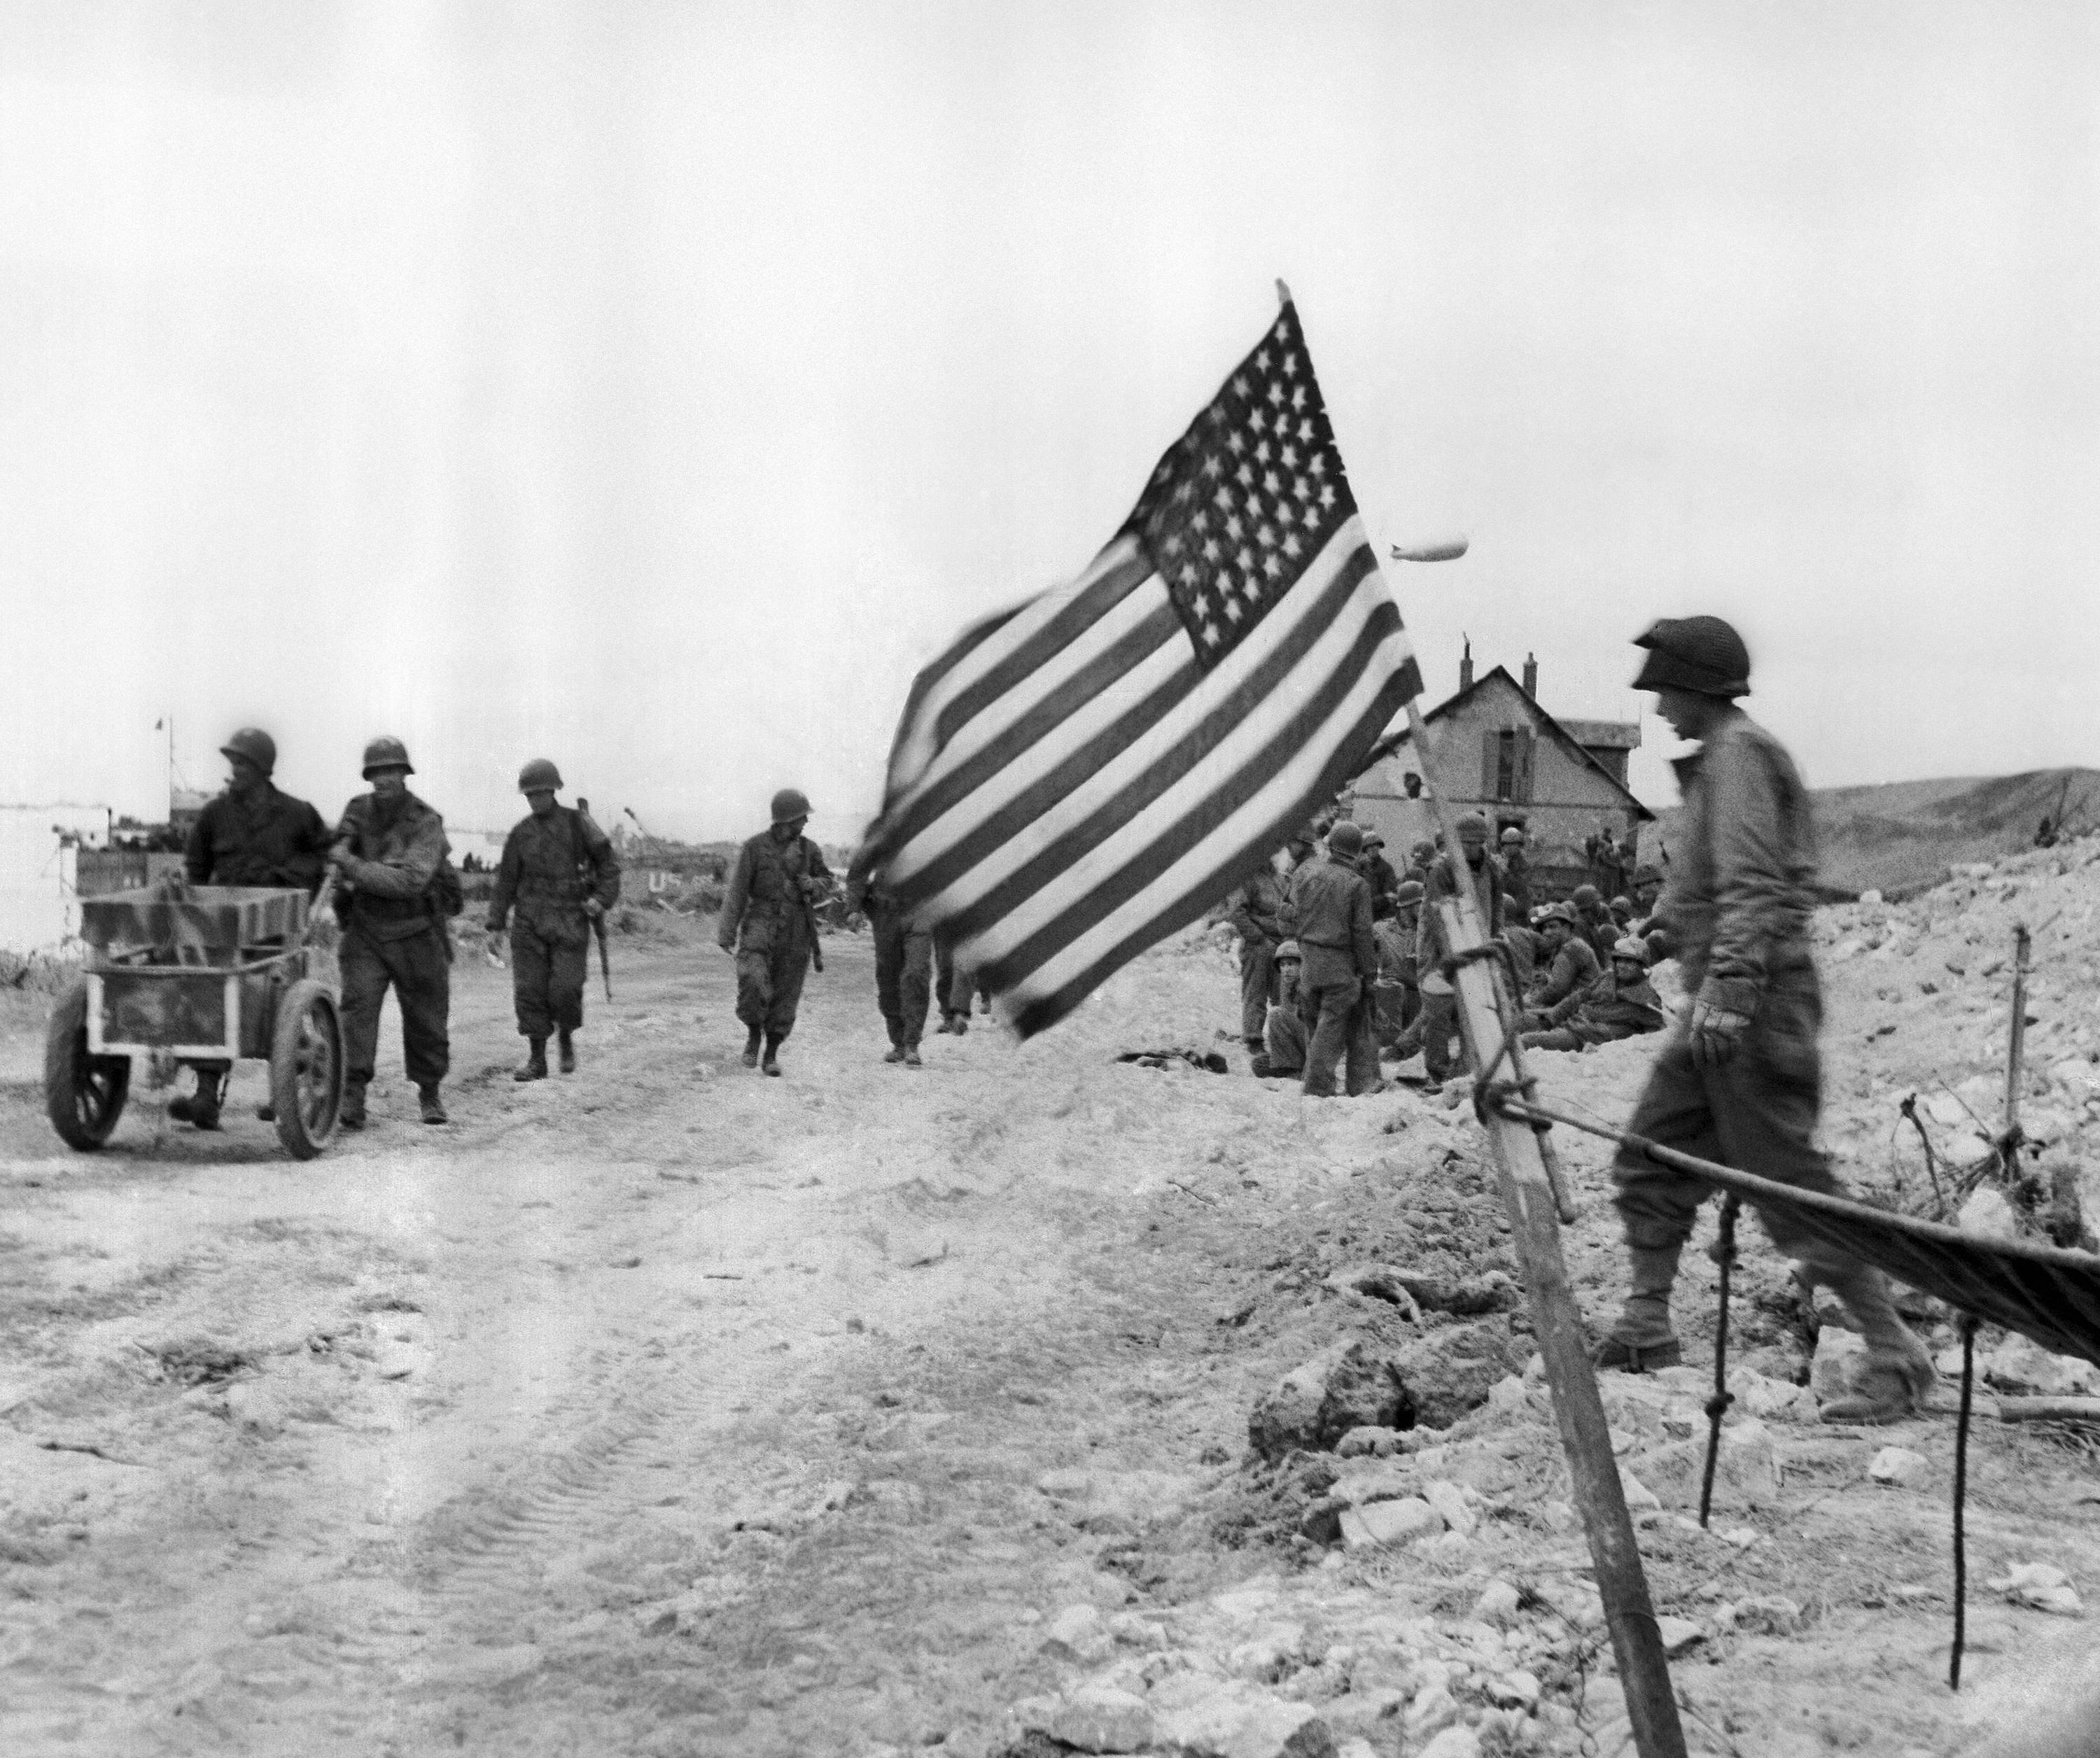 The American flag flies from a make-shift staff on a beach on the French Normandy coast on June 14, 1944 where allied troops fought bitterly to push back the Germans. Americans in background push a captured German ammunition cart.